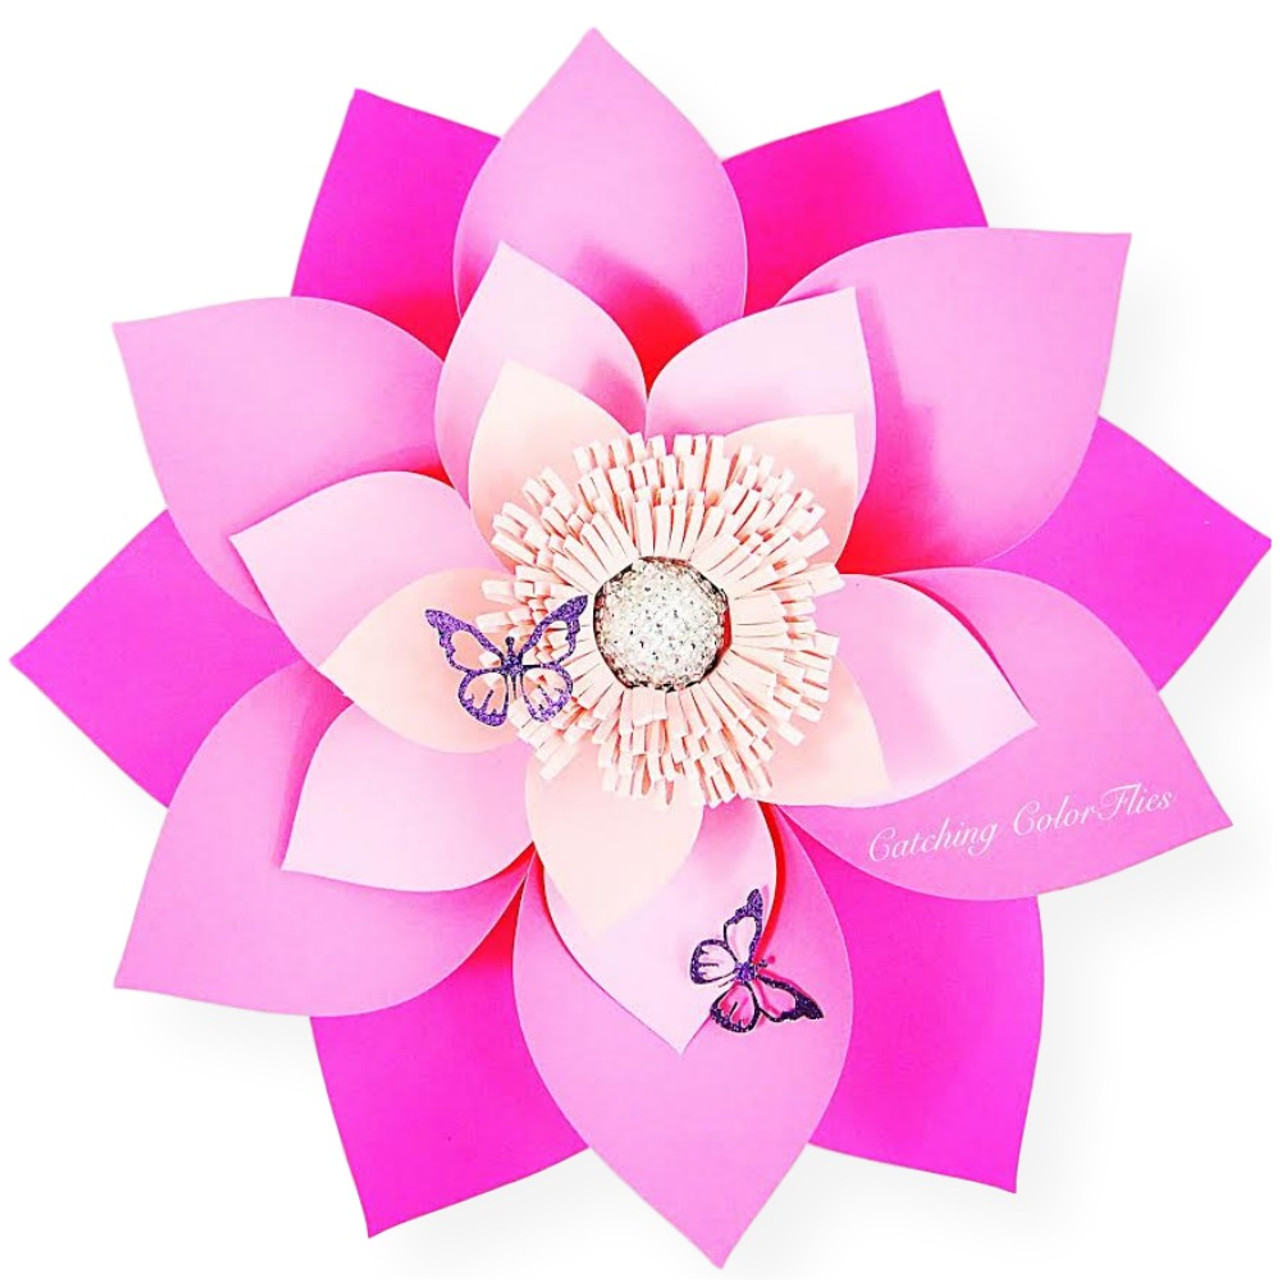 Alana style giant flower templates catching colorlfies izmirmasajfo